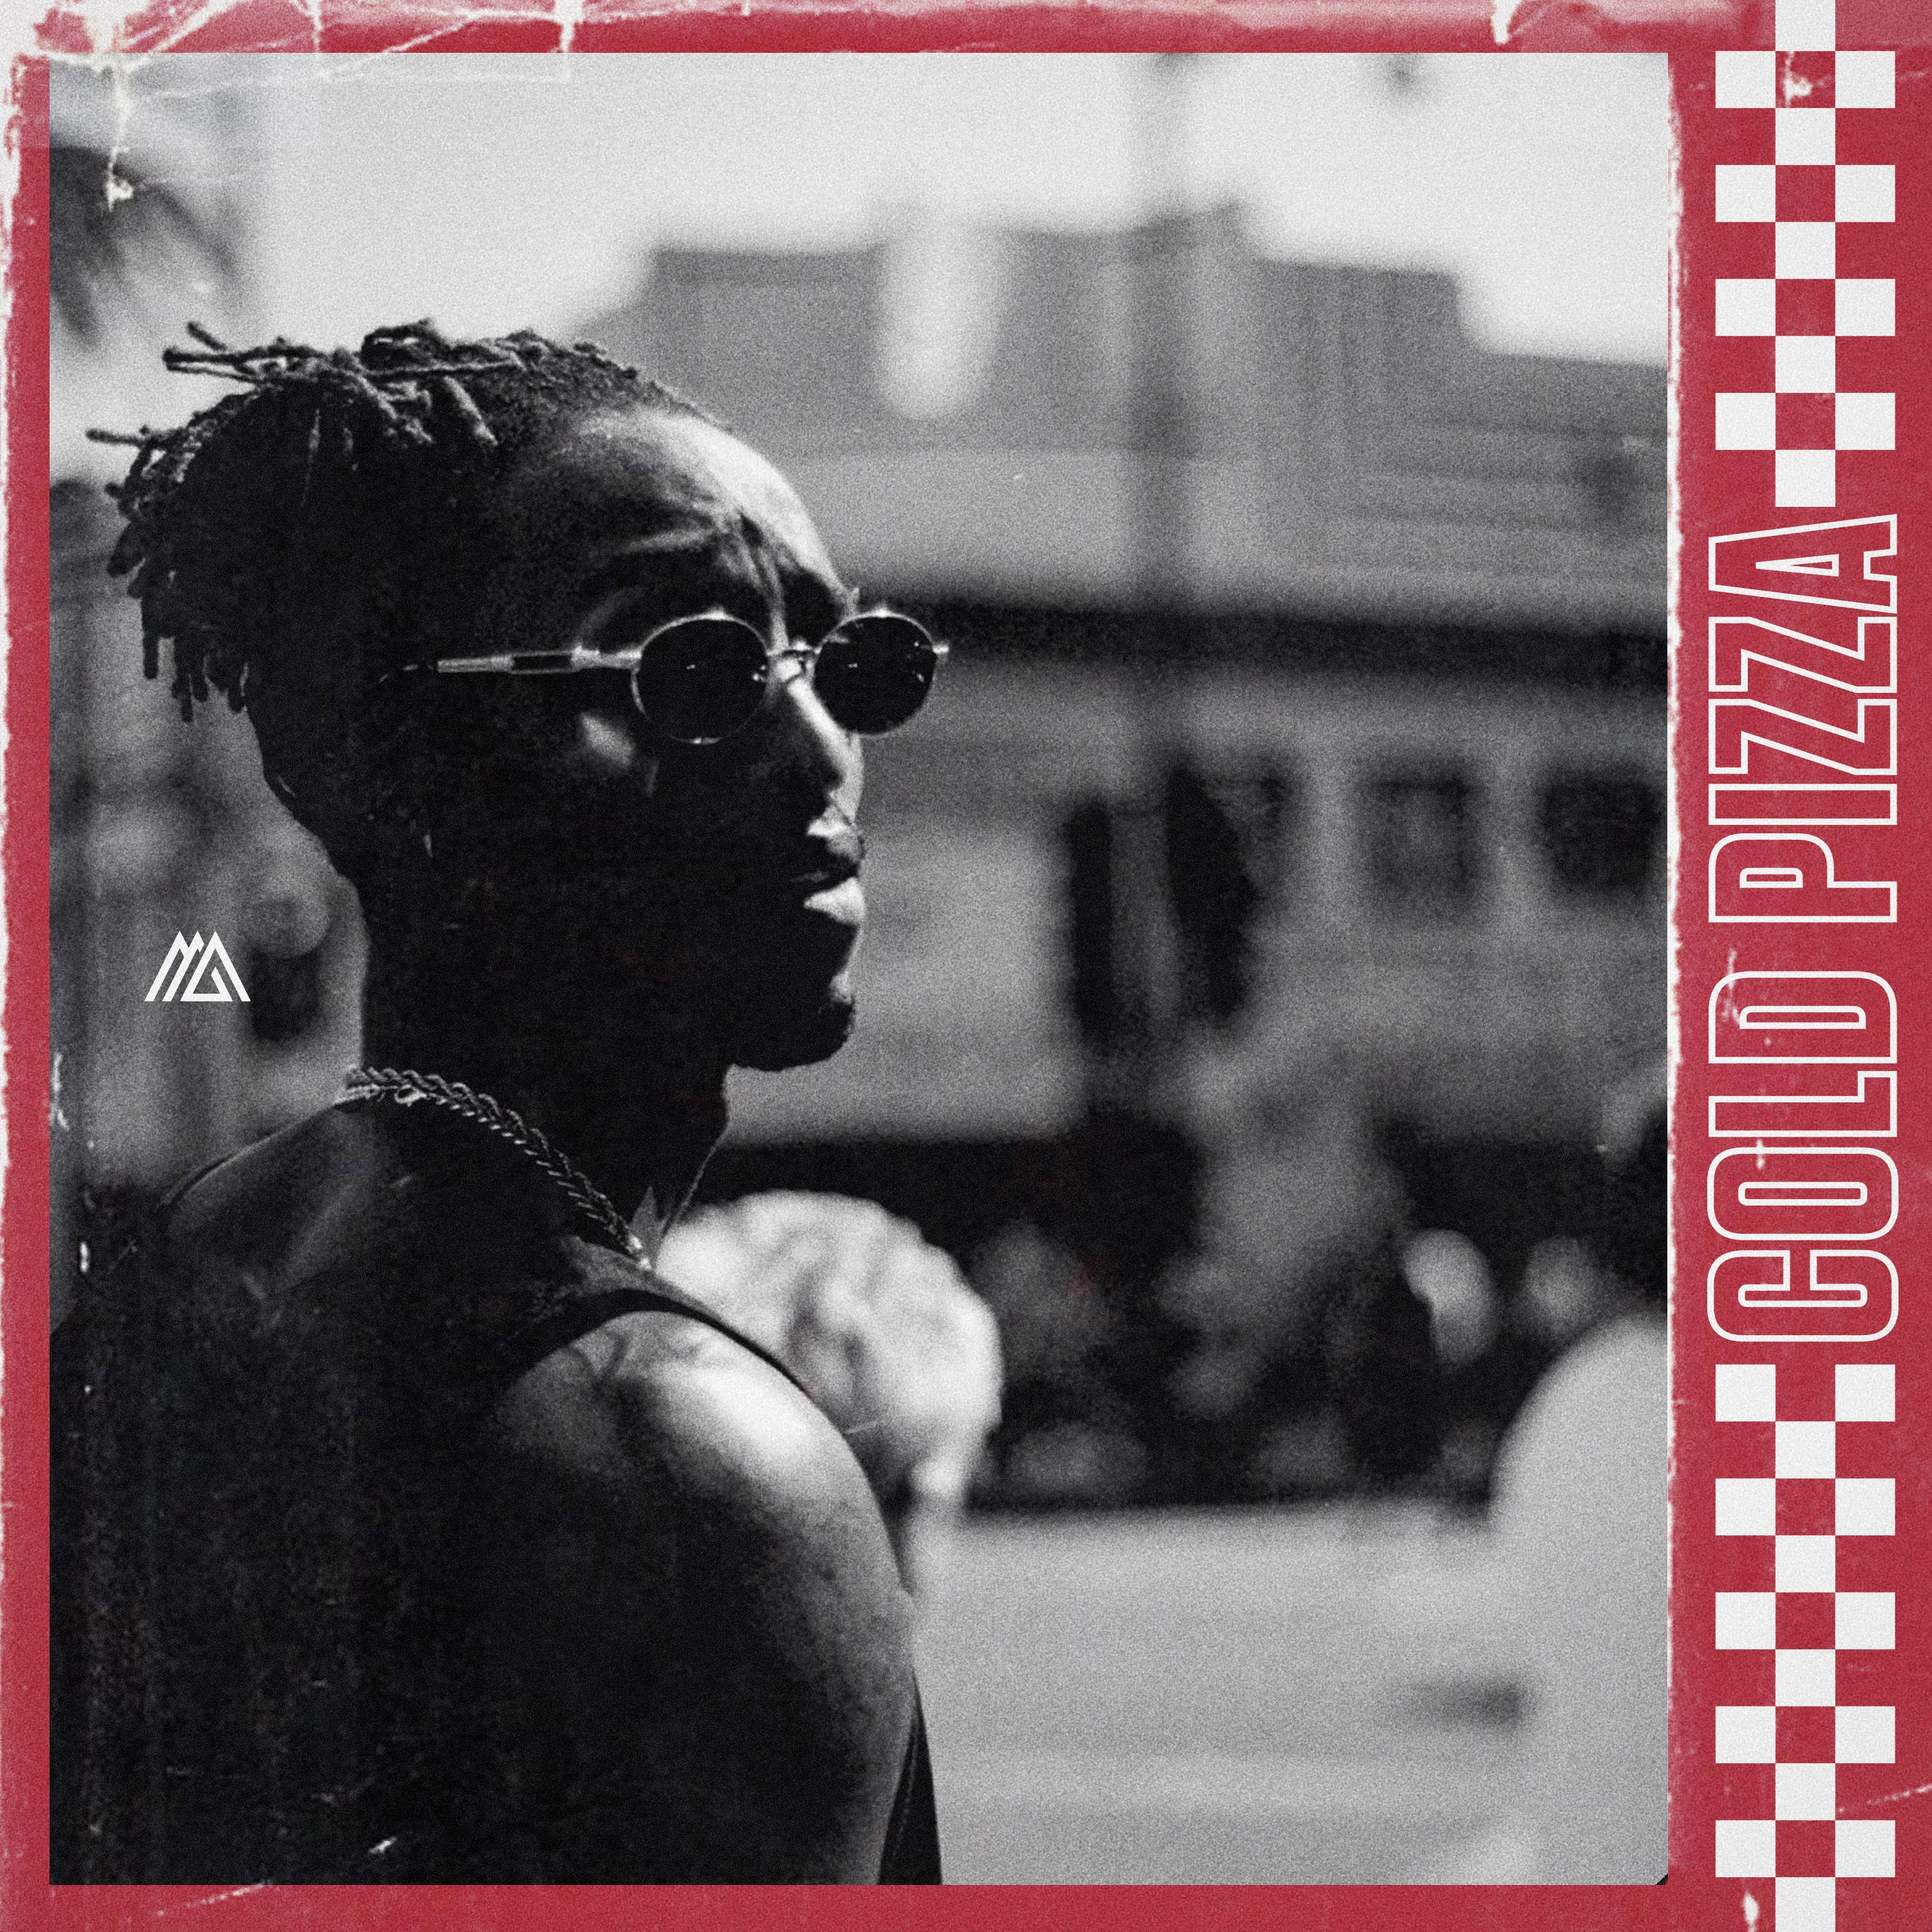 (New Exclusive Interview) Marty Grimes Talks Music With Vintage Music Group | @Marty_Grimes_